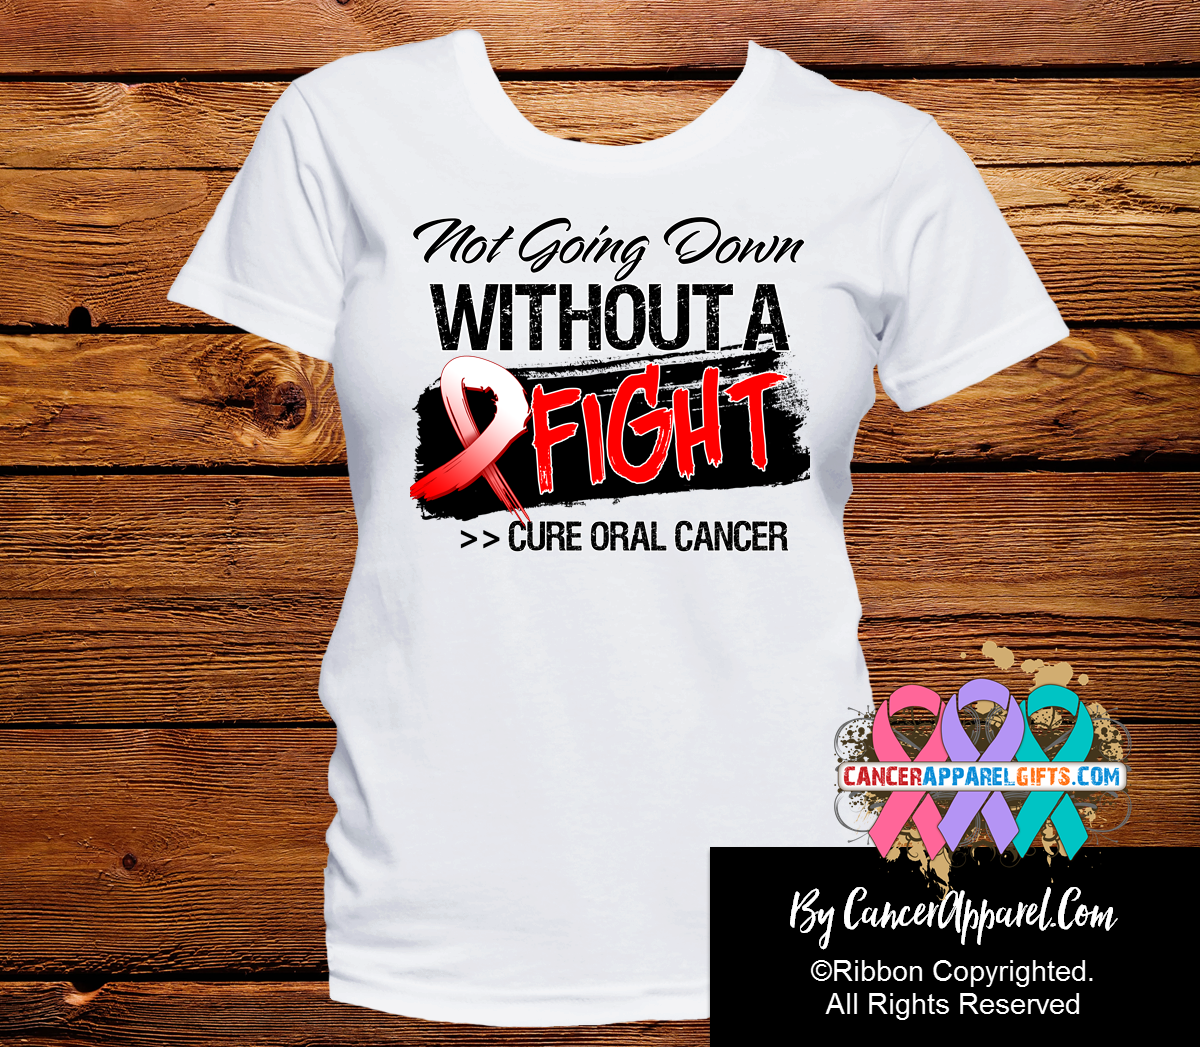 Oral Cancer Not Going Down Without a Fight Shirts - Cancer Apparel and Gifts